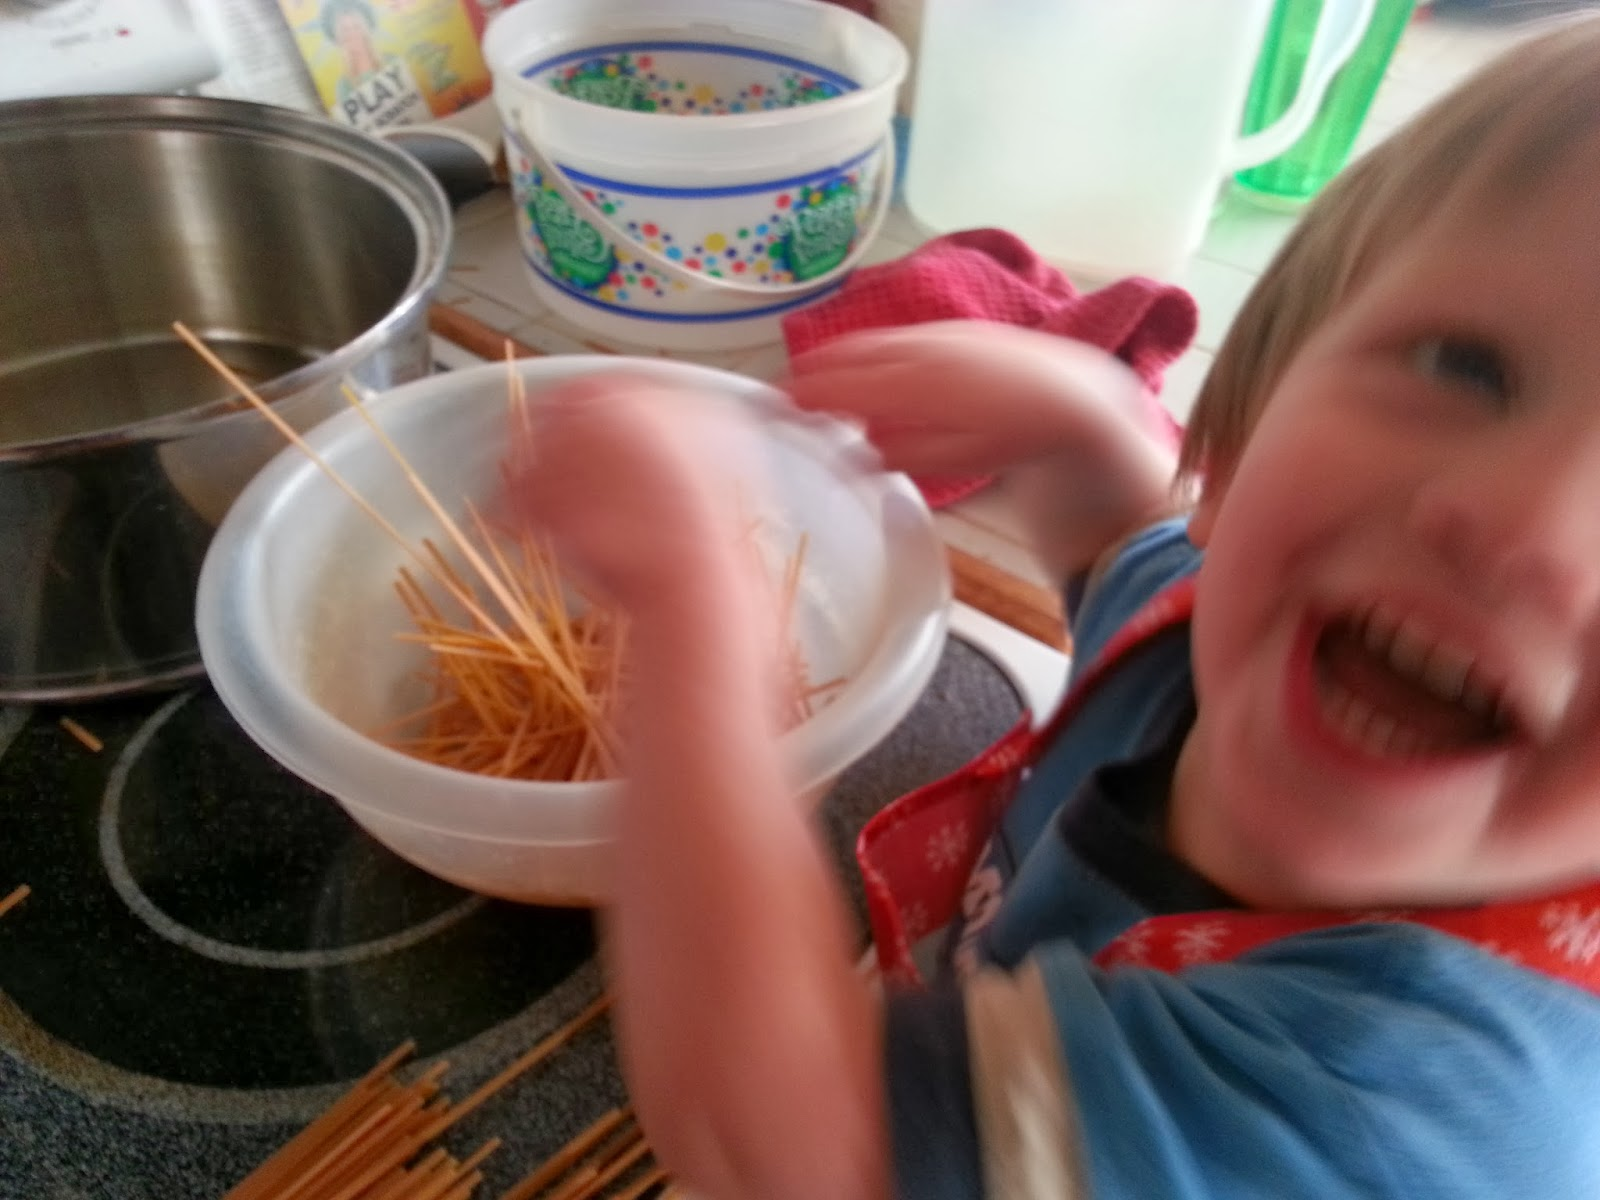 My 2 year old has to help cook every meal. Here is breaking up the noodles for the soup. I know this picture is a bit blurry but it totally expresses his joy for cooking.